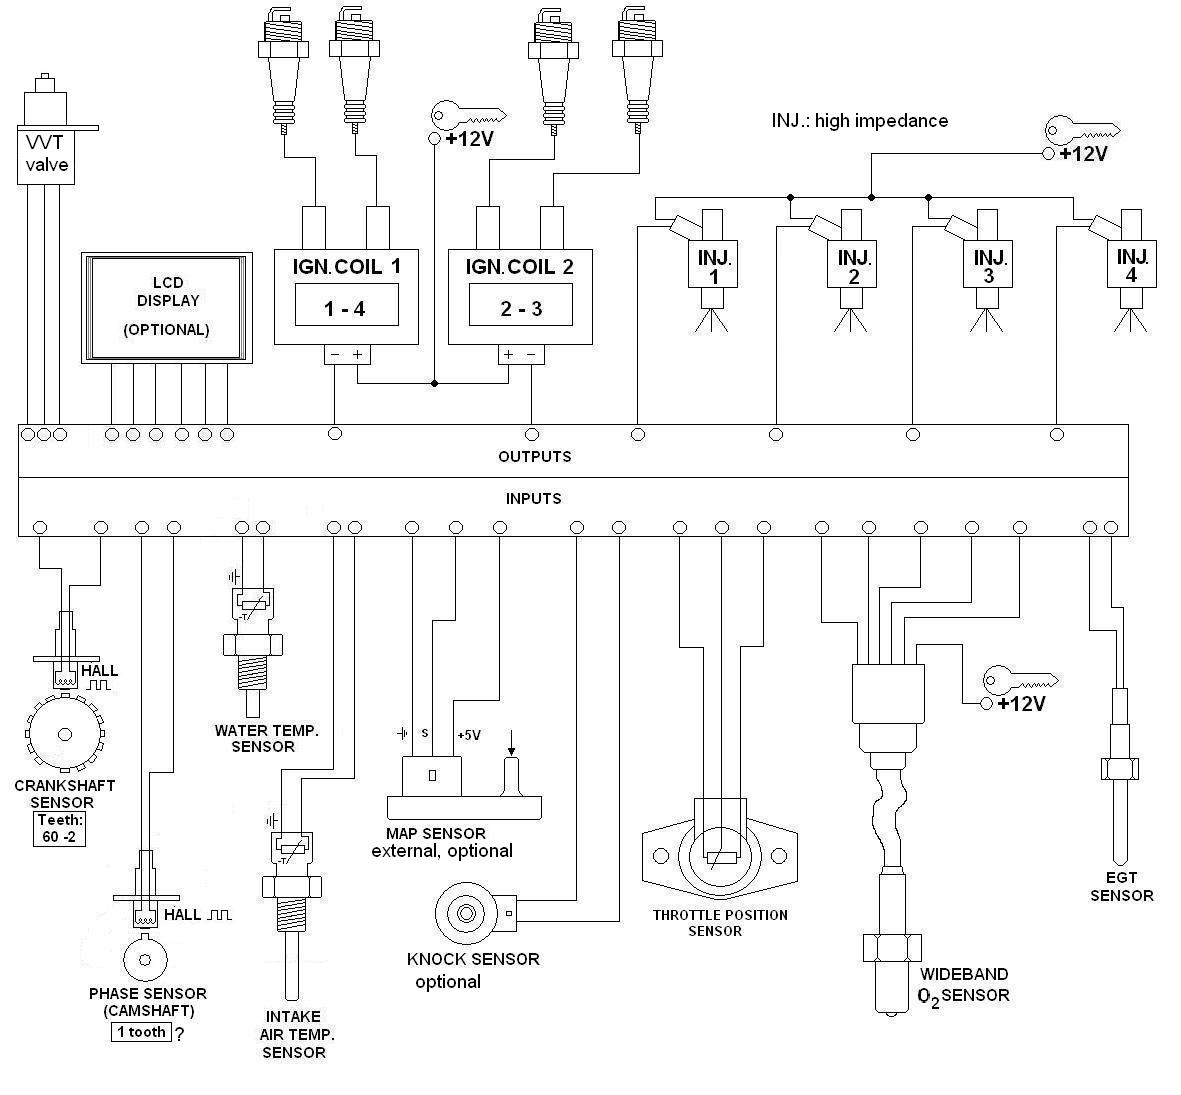 Volkswagen Gti Wiring Diagram Diagrams 2002 Vw 2 0 Engine Rabbit Get Free